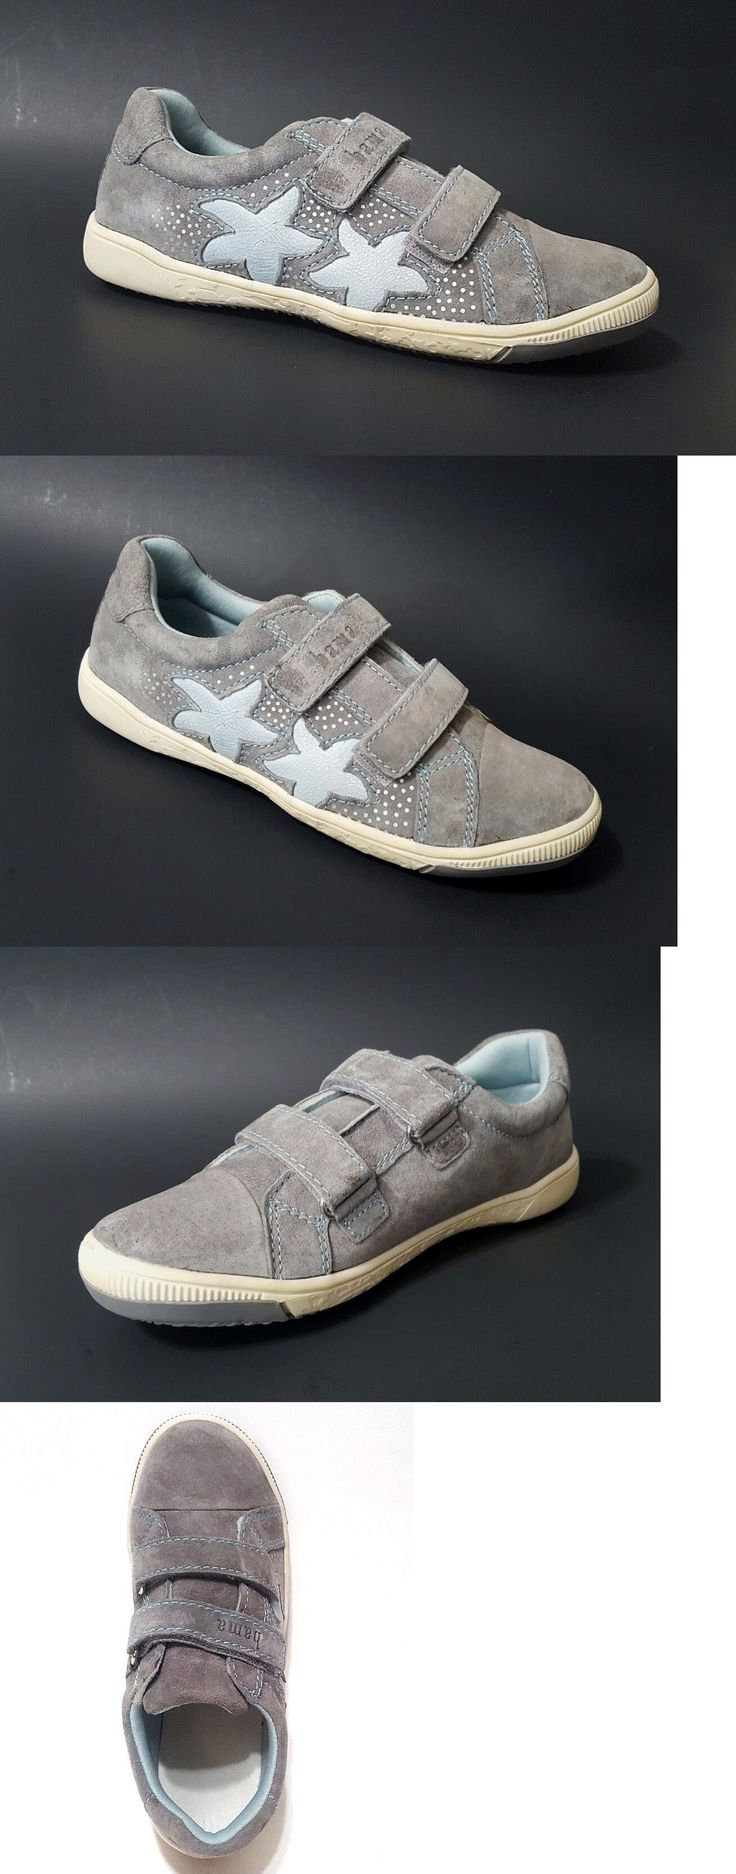 Girls Shoes 57974: New $90 Bama Kids Girls Shoes Leather European Fashion Gray Size 1 Usa 32 Euro -> BUY IT NOW ONLY: $44.99 on eBay!